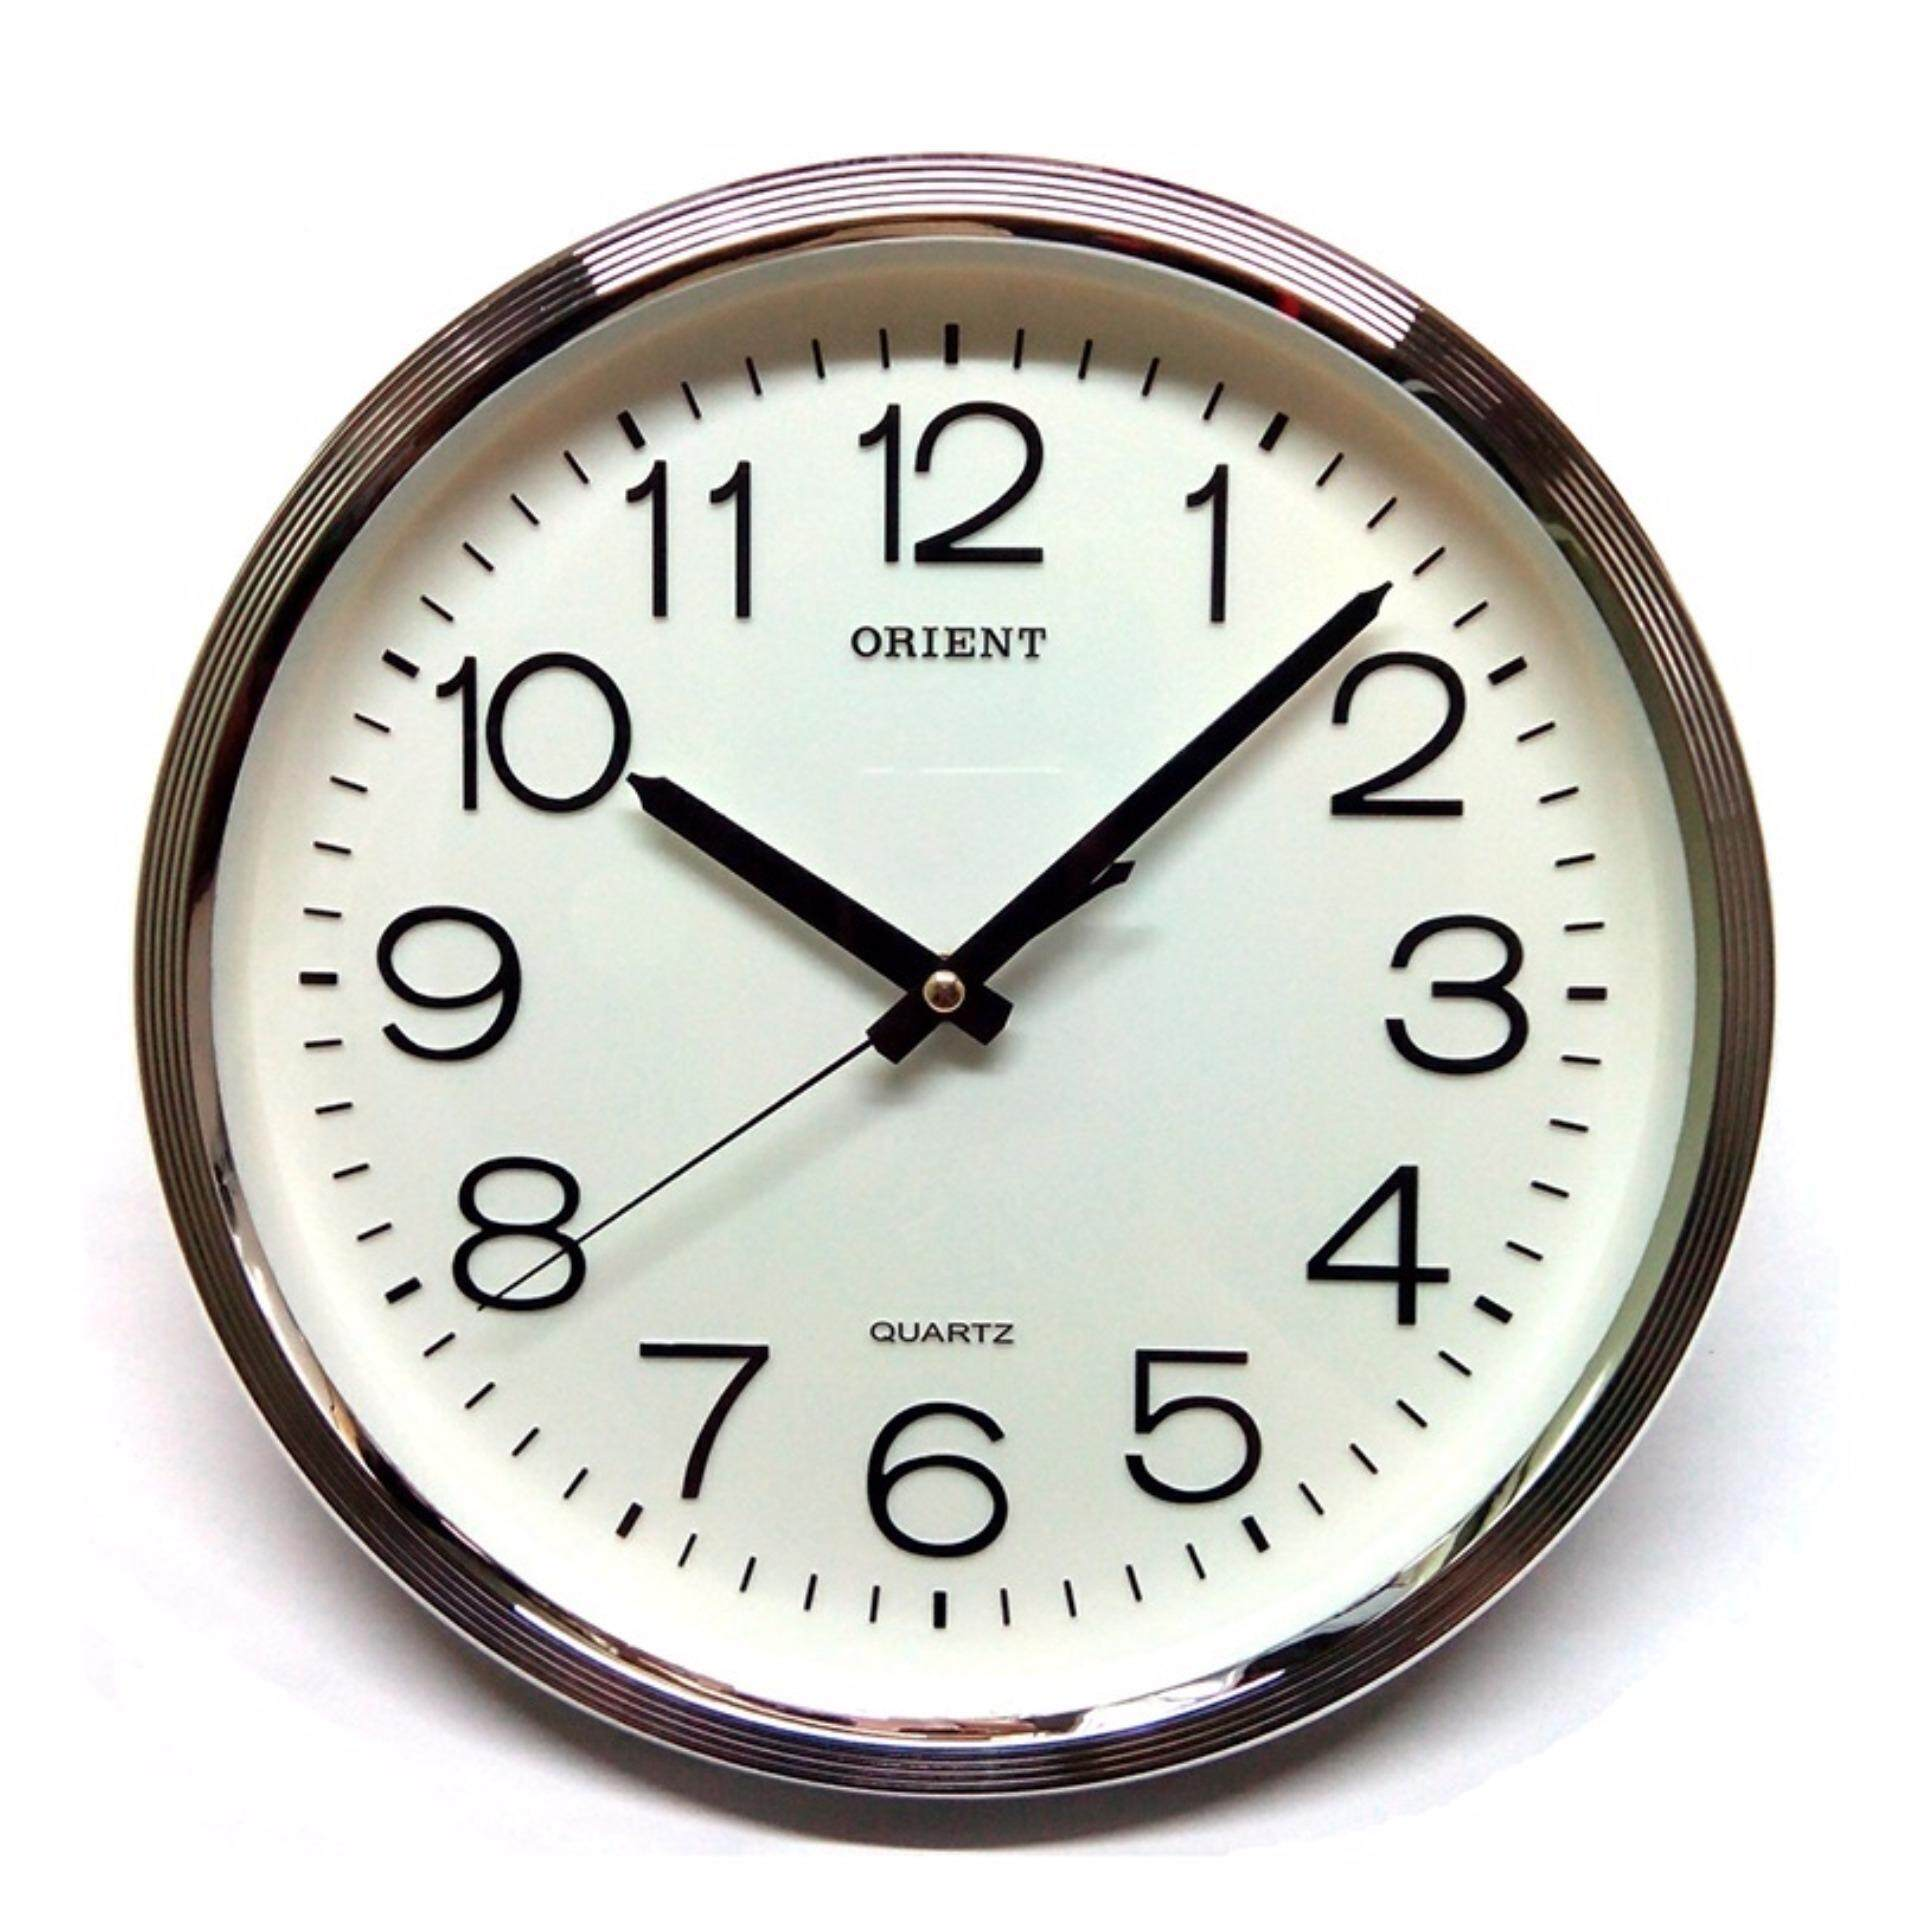 Wall clock malaysia page 7 fallcreekonline go to shop source orient wall clock choice image home wall decoration ideas amipublicfo Images